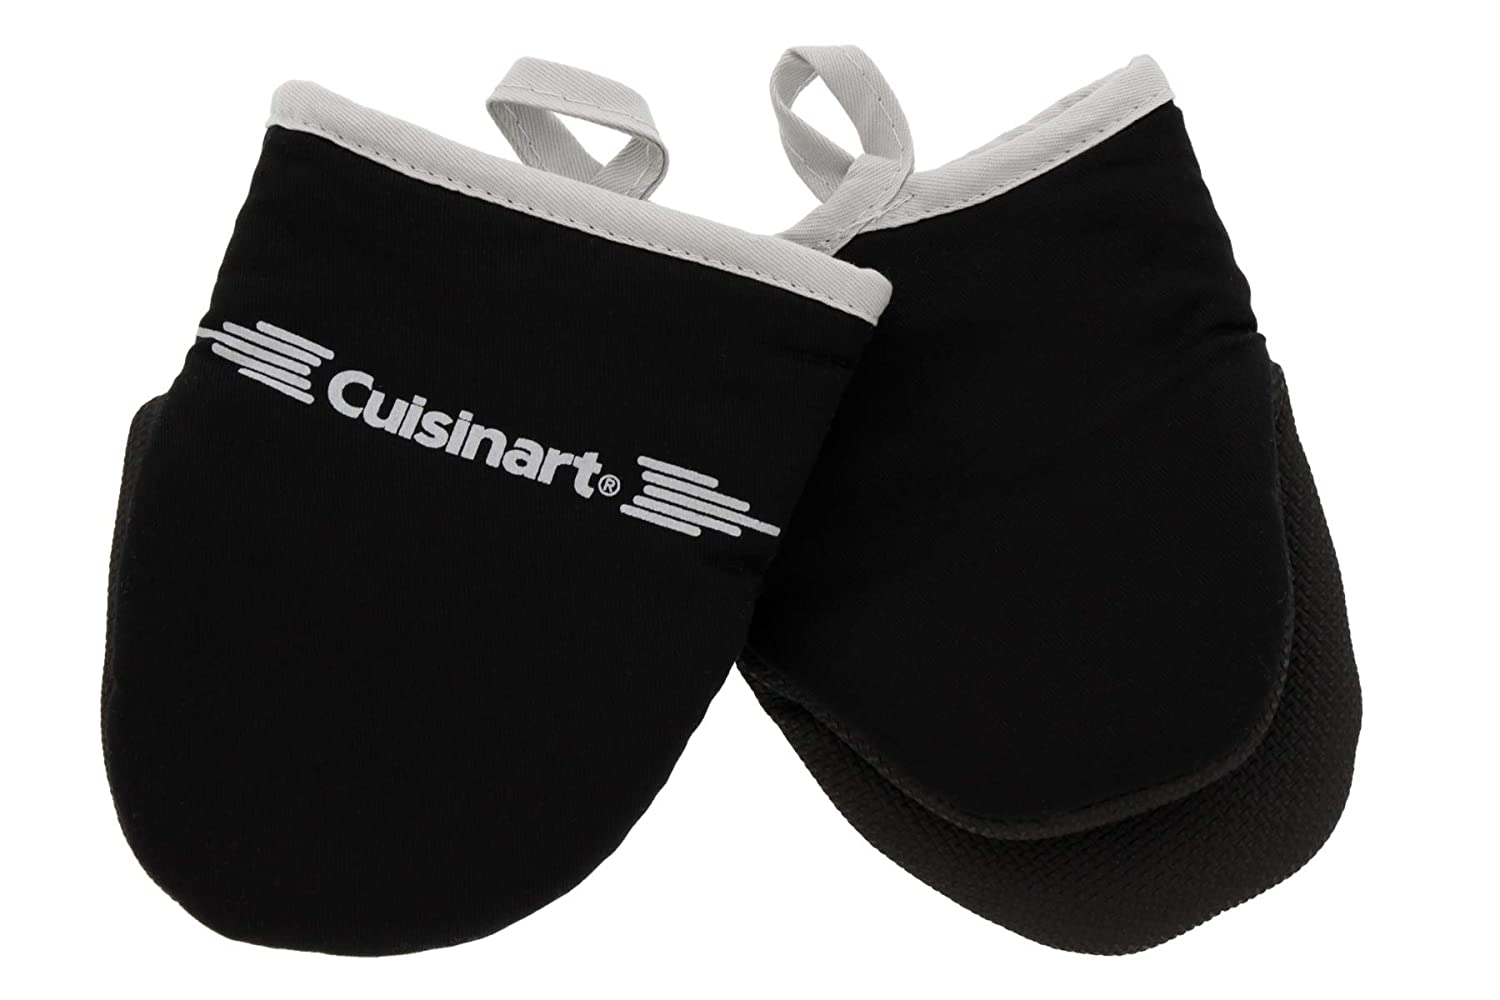 Cuisinart Neoprene Mini Oven Mitts, 2pk - Non-Slip Heat Resistant Gloves Protect Hands and Surfaces from Hot Cookware, Kitchenware Items - Ideal Mini Kitchen Set with Hanging Loop - Black with Grey